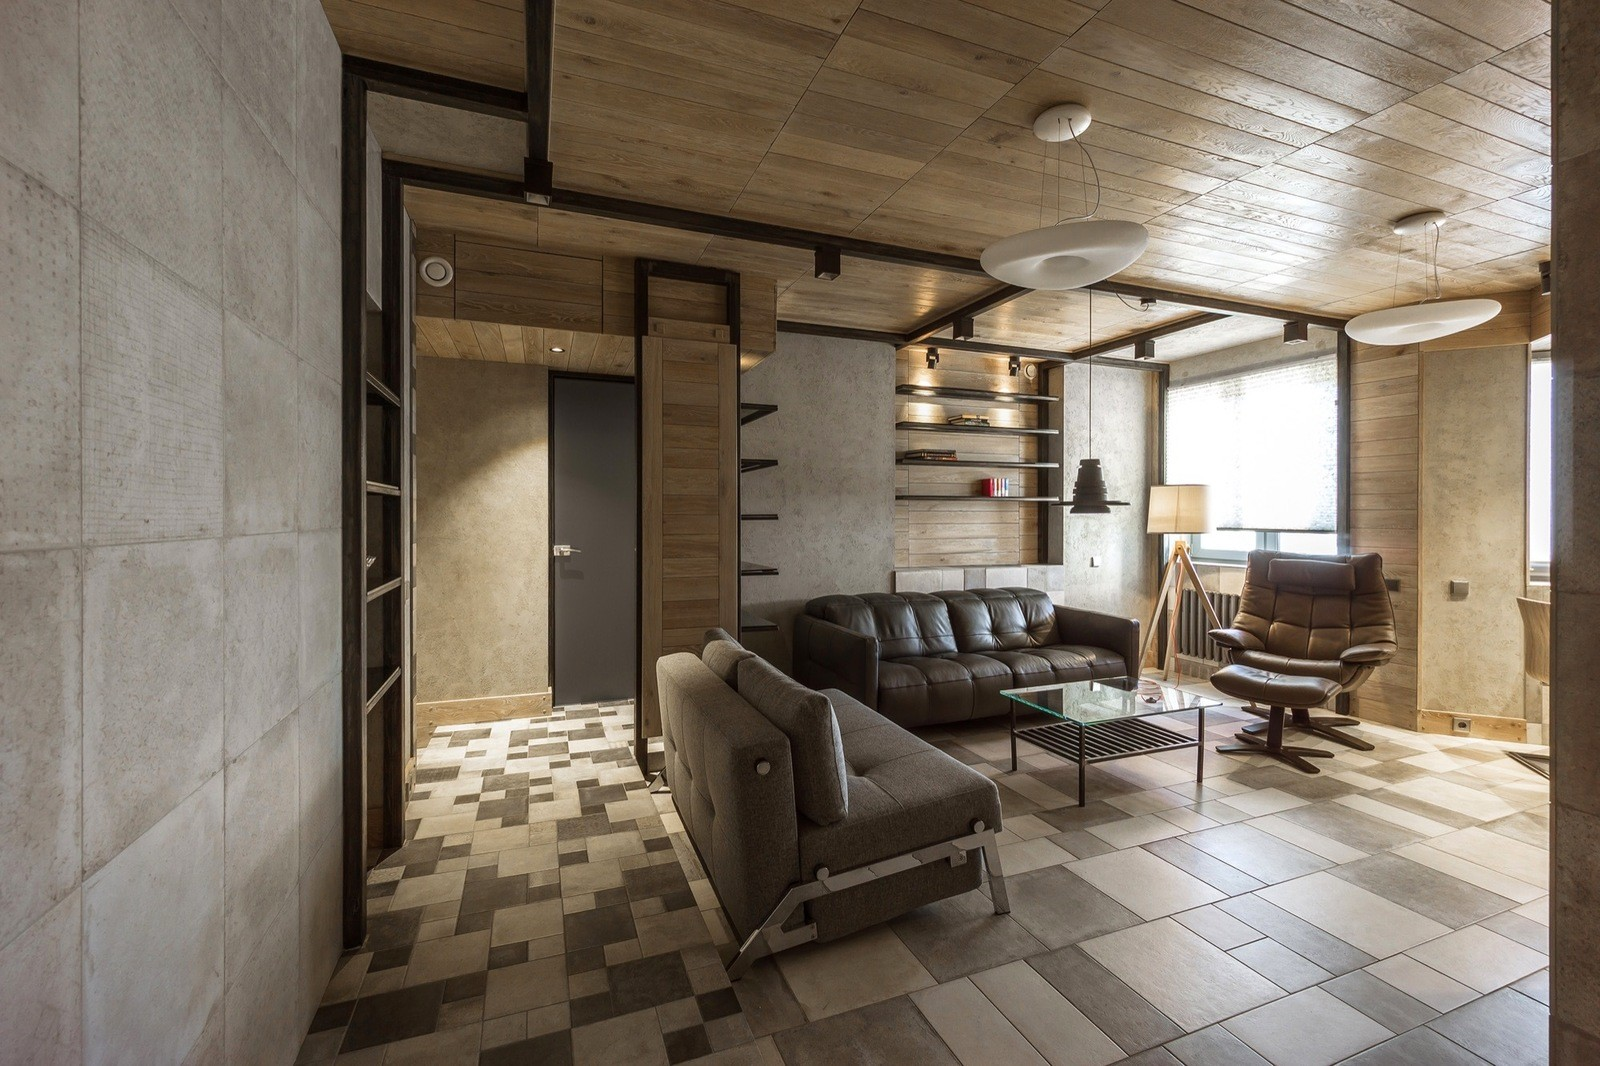 Apartment Located in Moscow, Russia Designed by Alekseem Rozenbergom